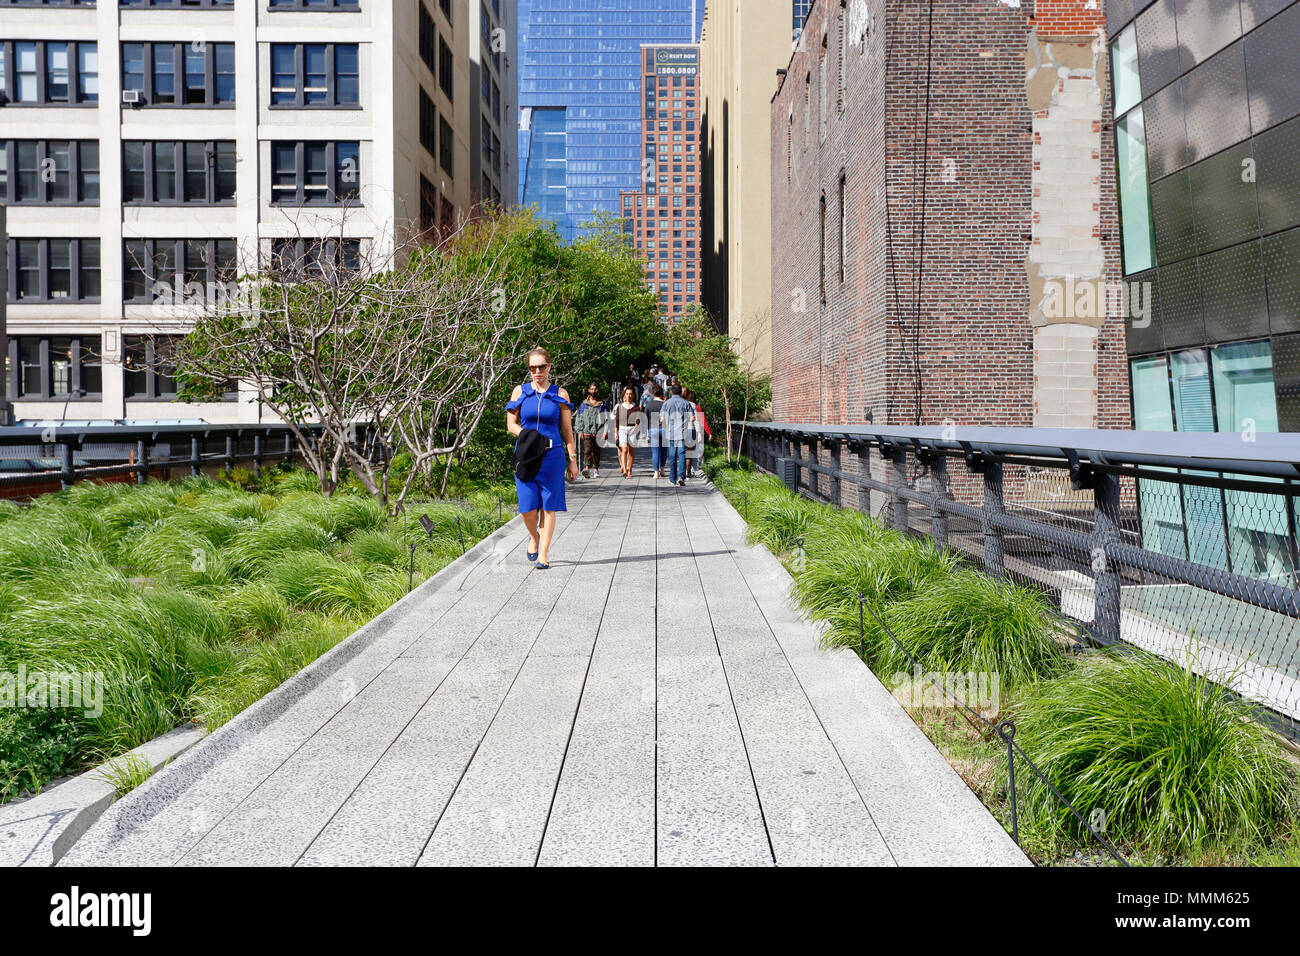 People on the High Line park - Stock Image